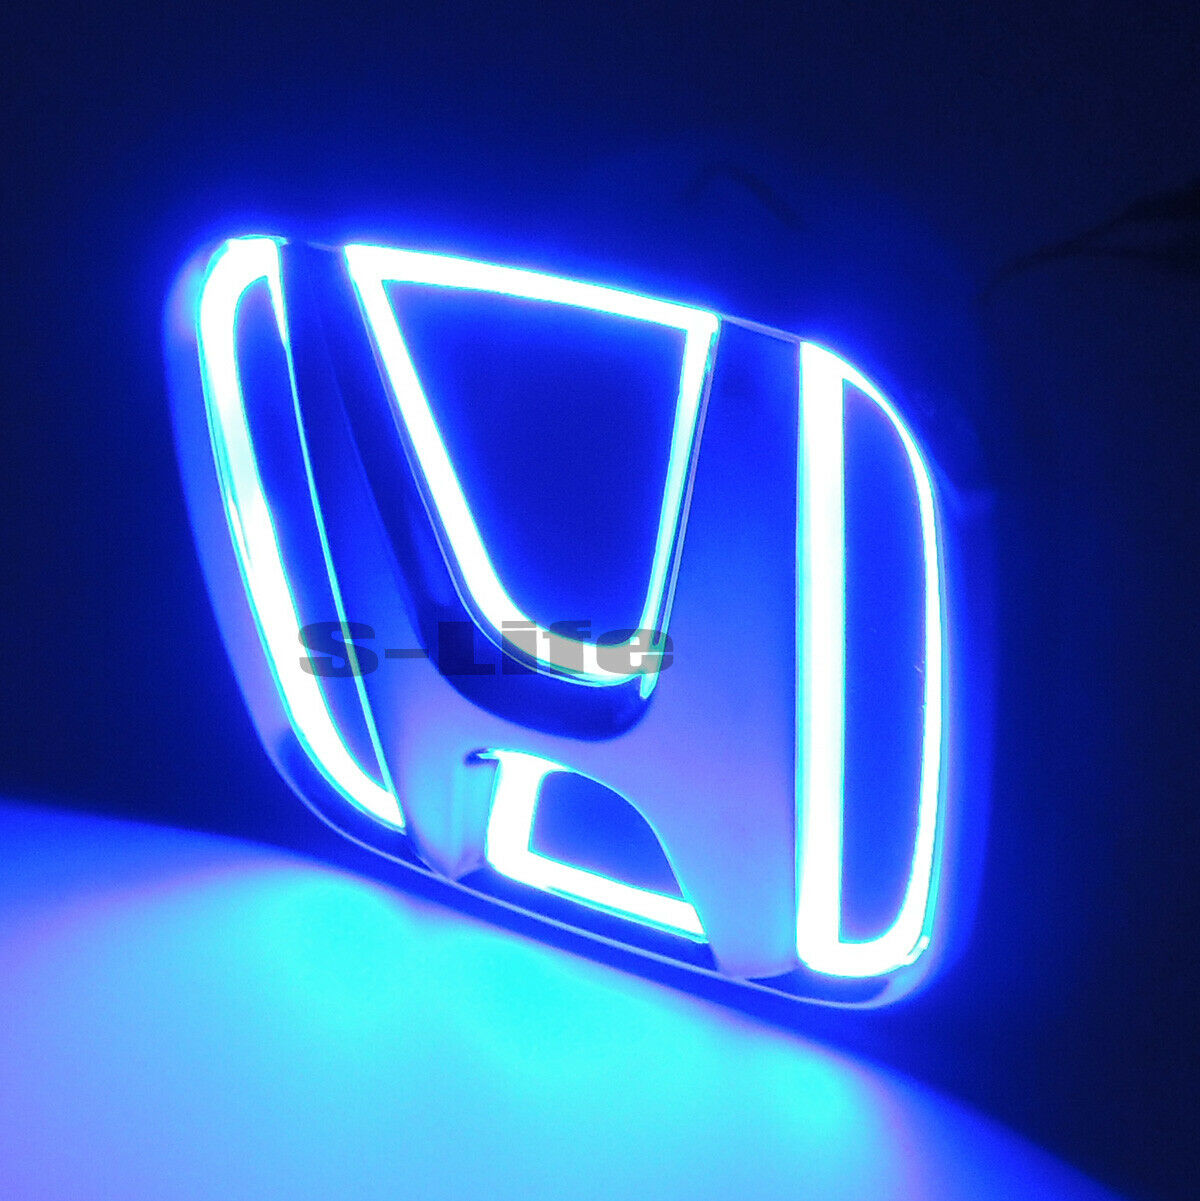 Details about Blue Auto 5D LED Car Tail Logo Light Badge Emblem For Honda  New FIt 09.